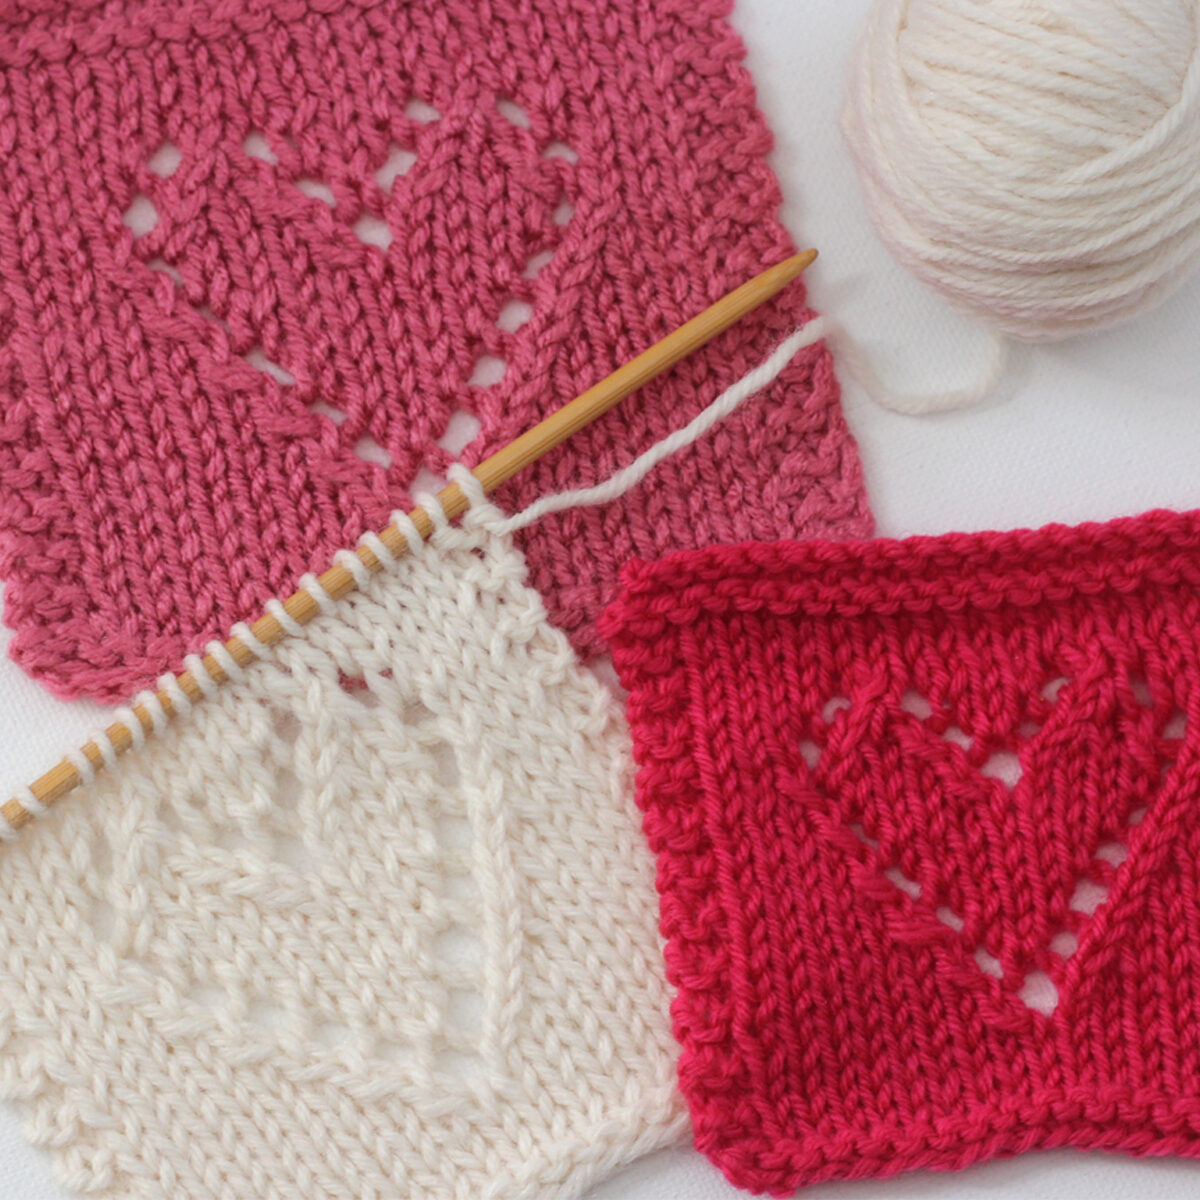 Lace Heart Knit Stitch Pattern squares in white, pink, and red yarn colors.